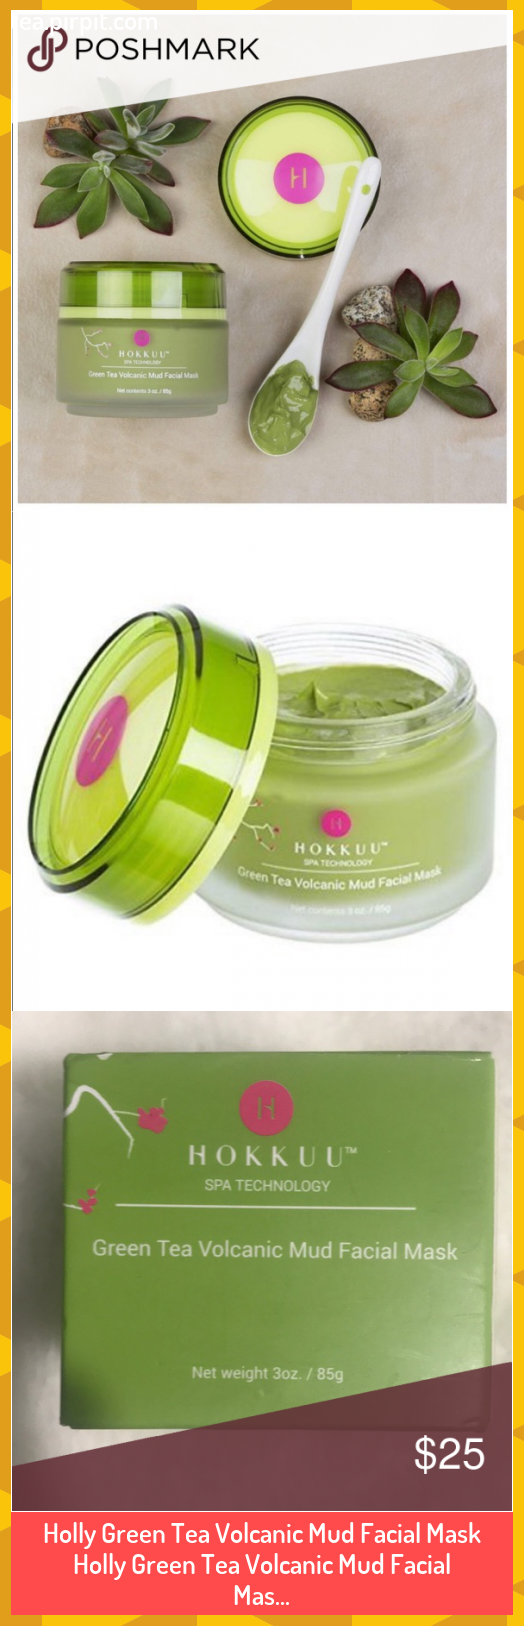 Photo of Holly Green Tea Volcanic Mud Facial Mask Holly Green Tea Volcanic Mud Facial Mas…